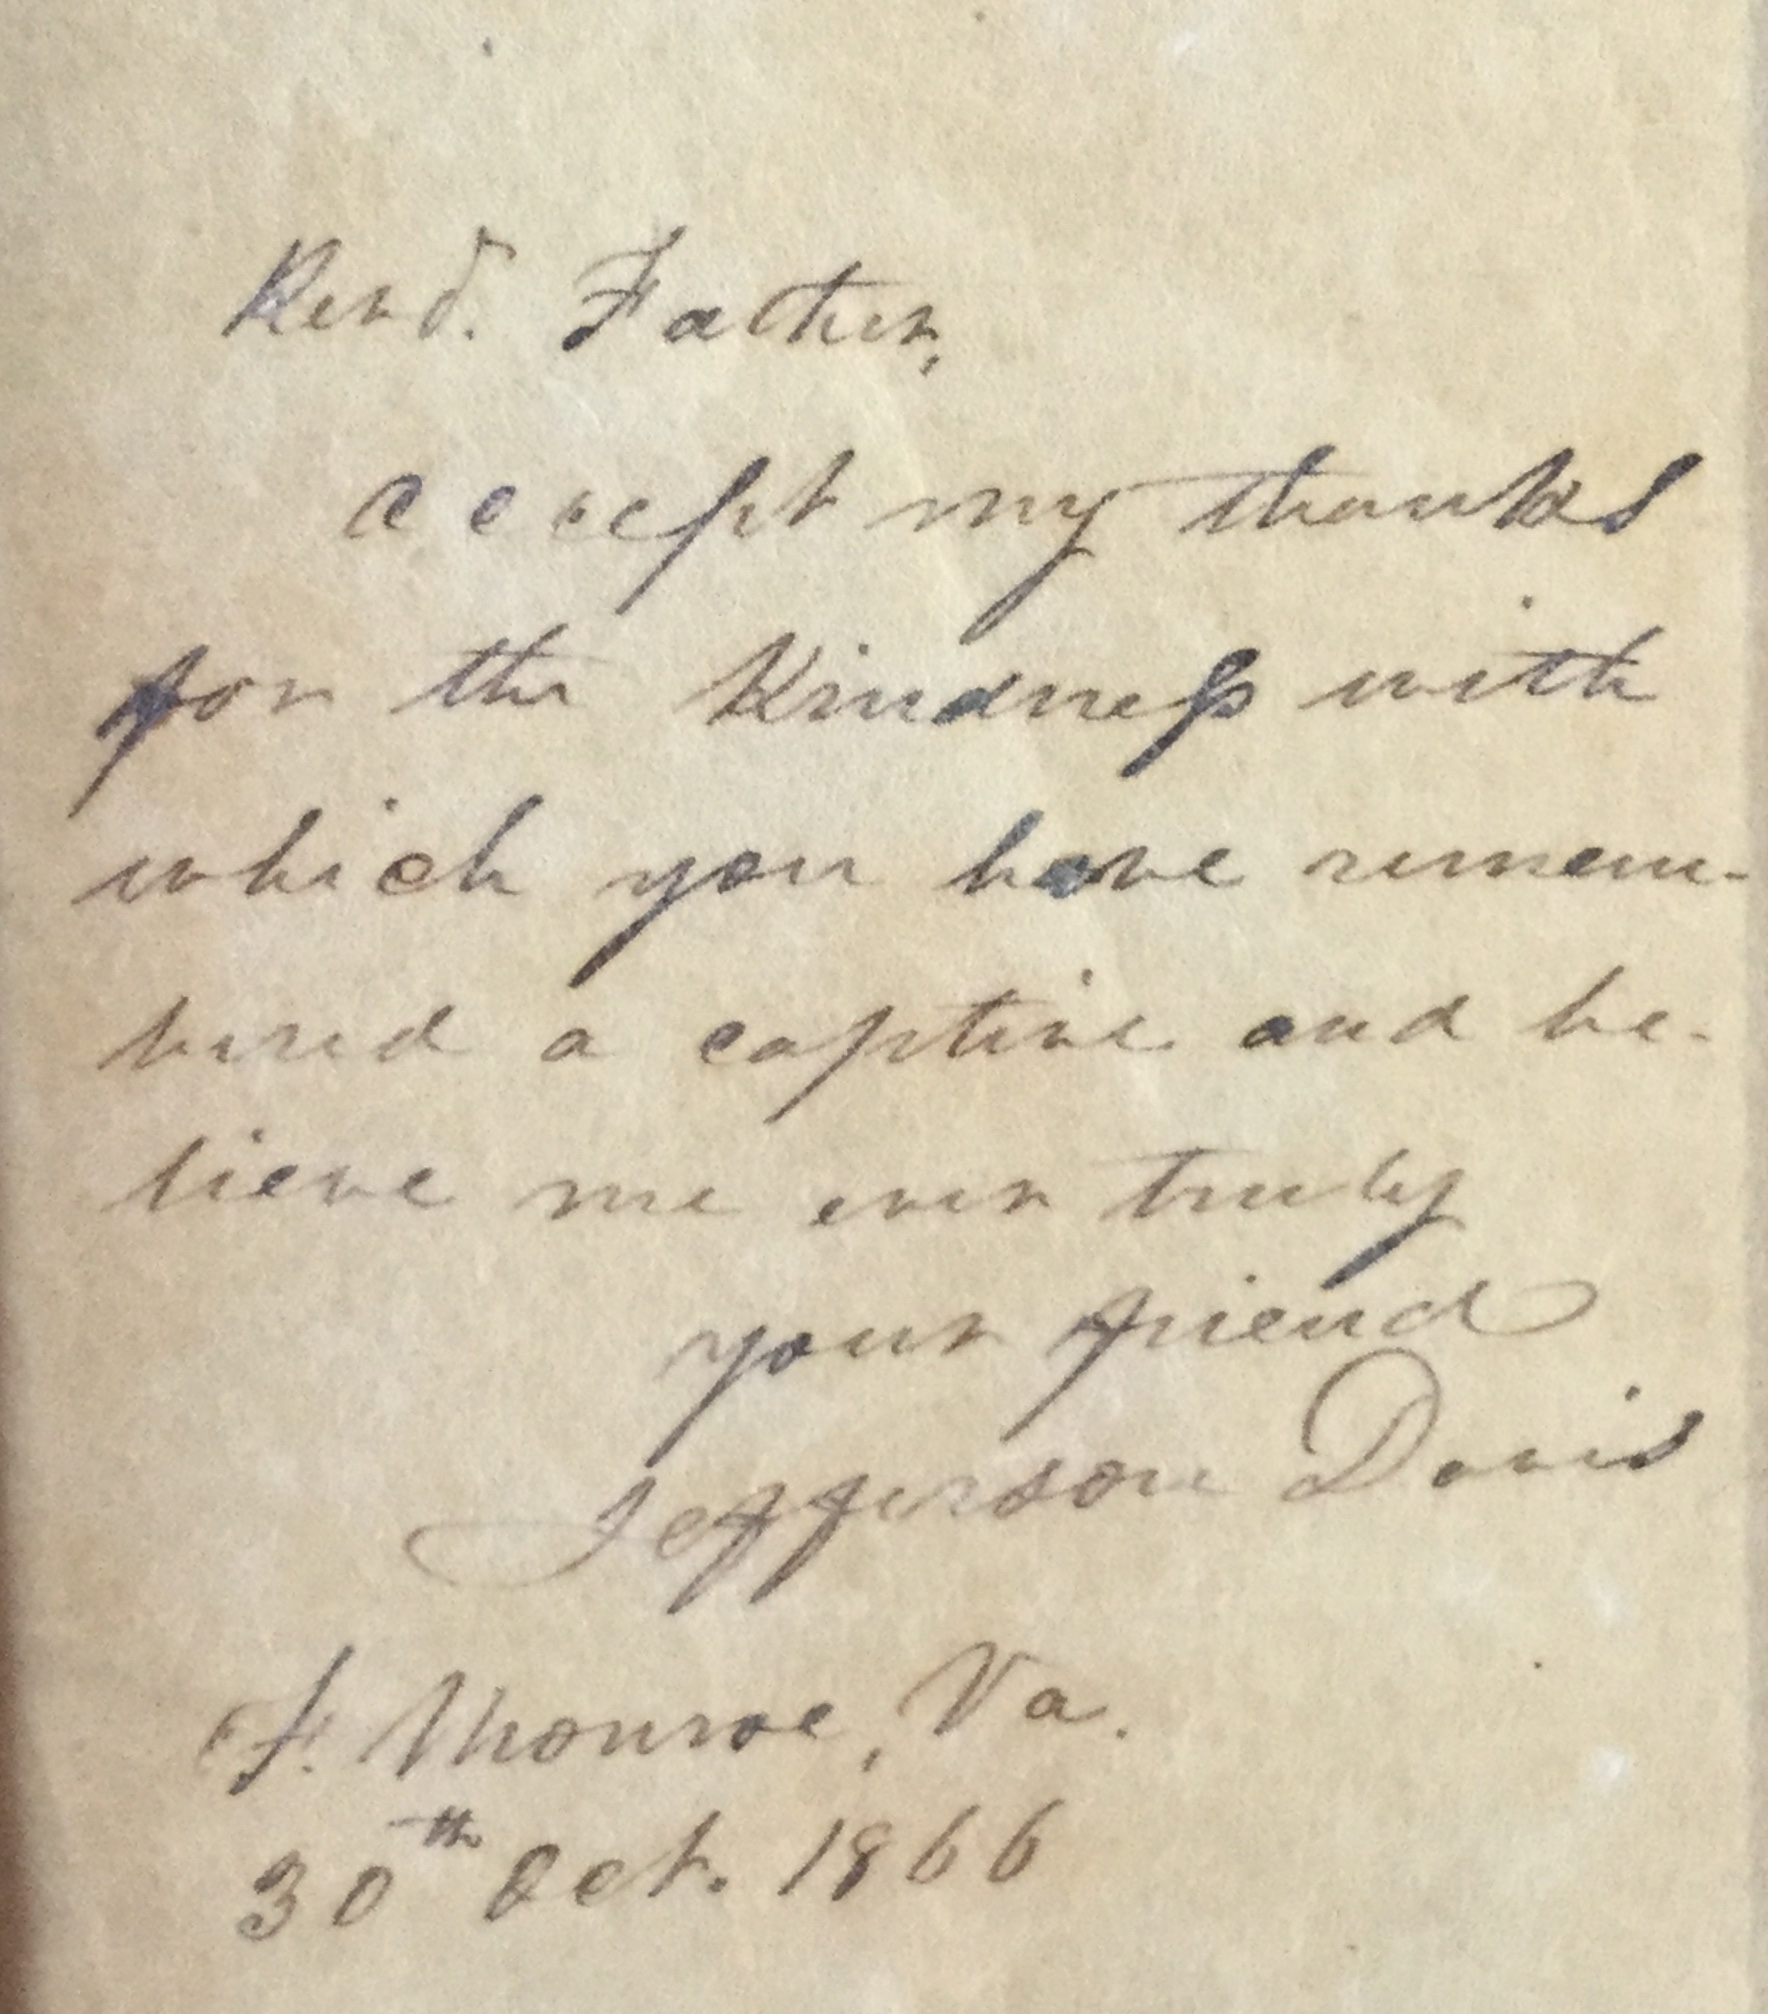 Jefferson Davis Letter To Jacob A. Walter